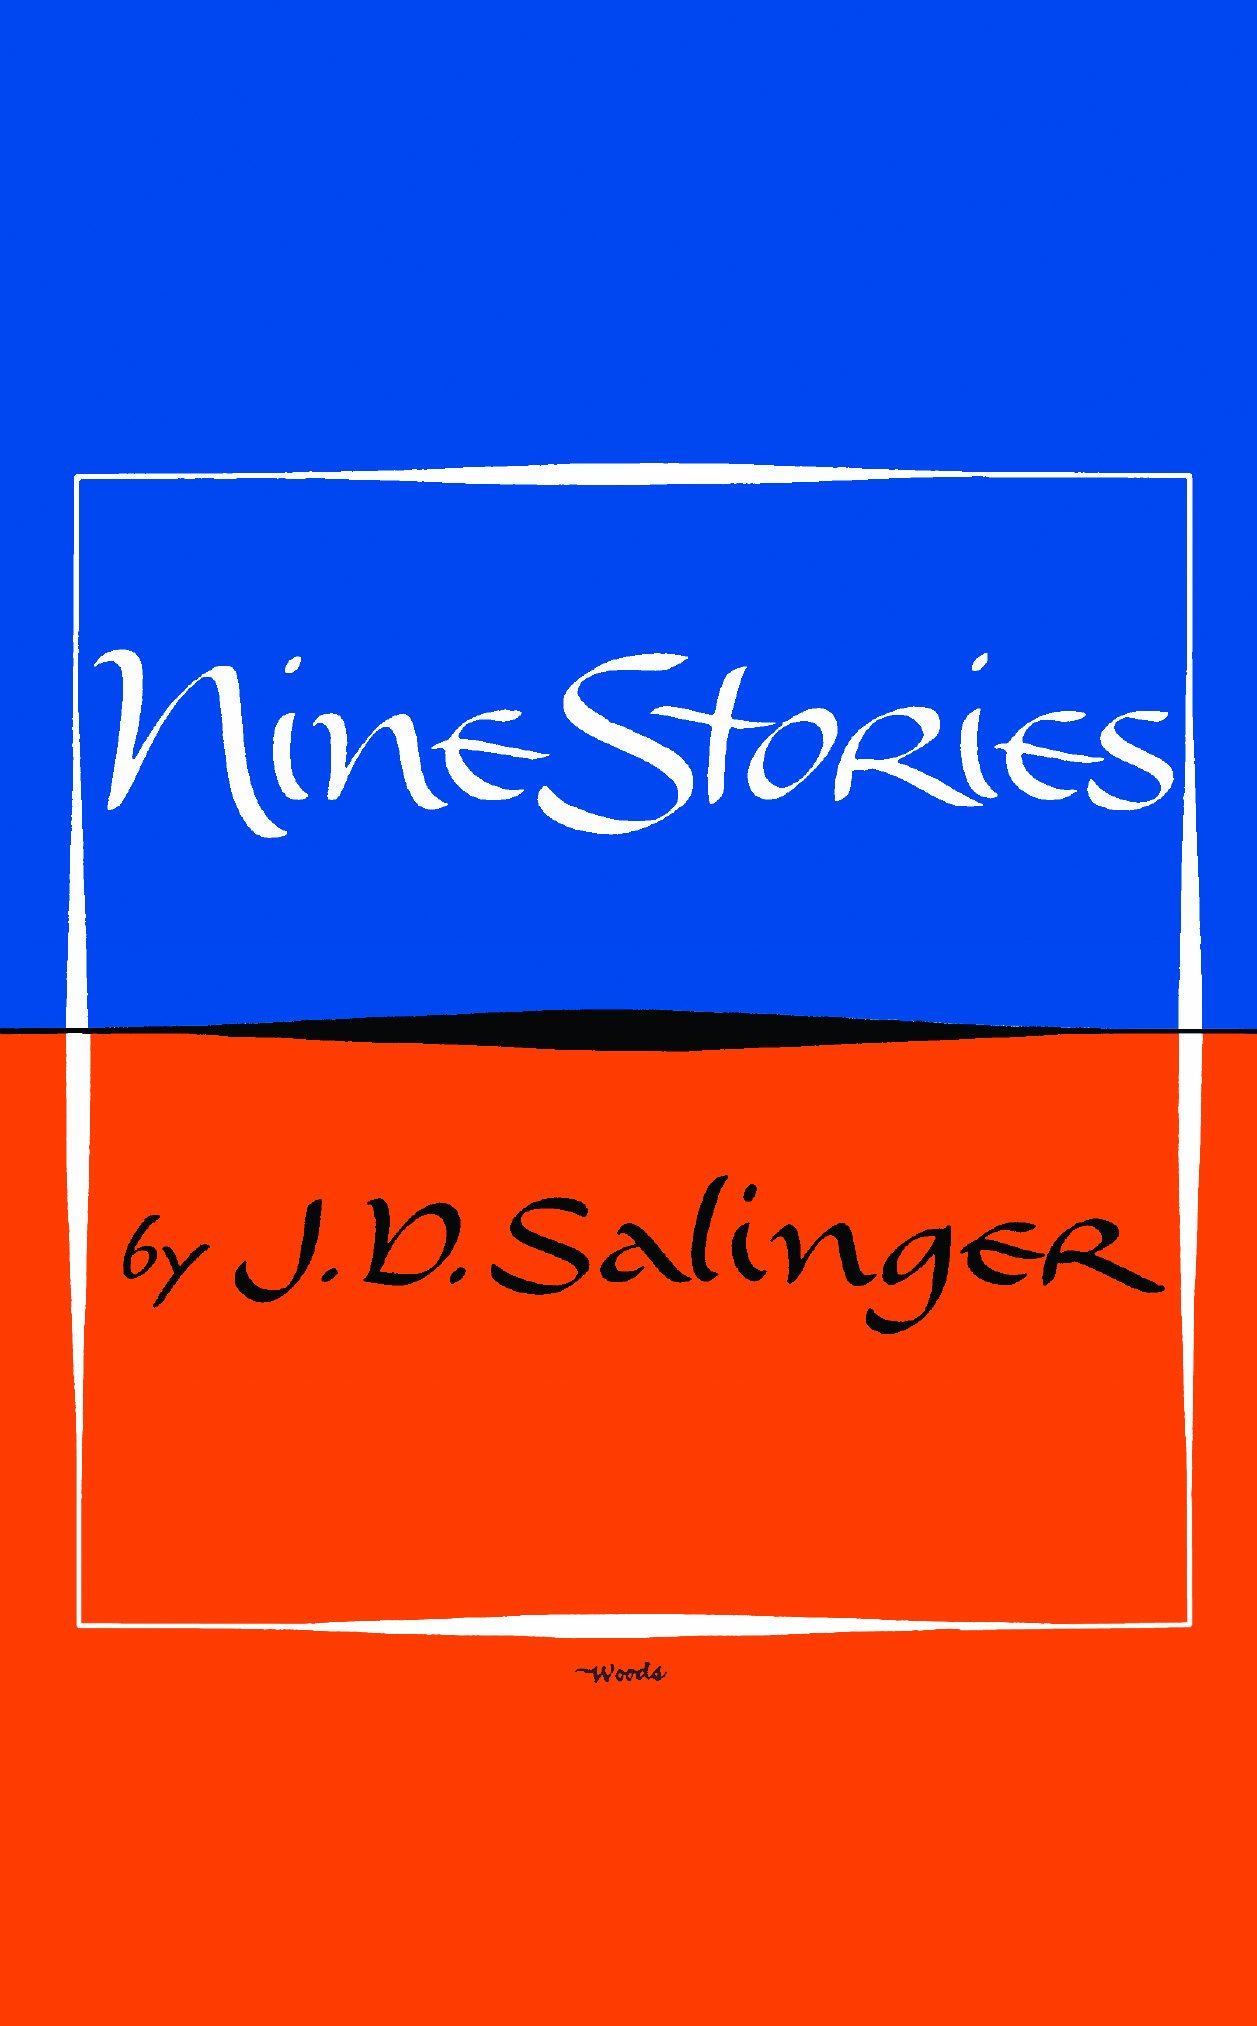 an analysis of the book nine stories by jd salinger So the fancy book club met a couple weeks ago to discuss nine stories by jd salinger much despair was had because of our varied and confused insights into salinger's stories.